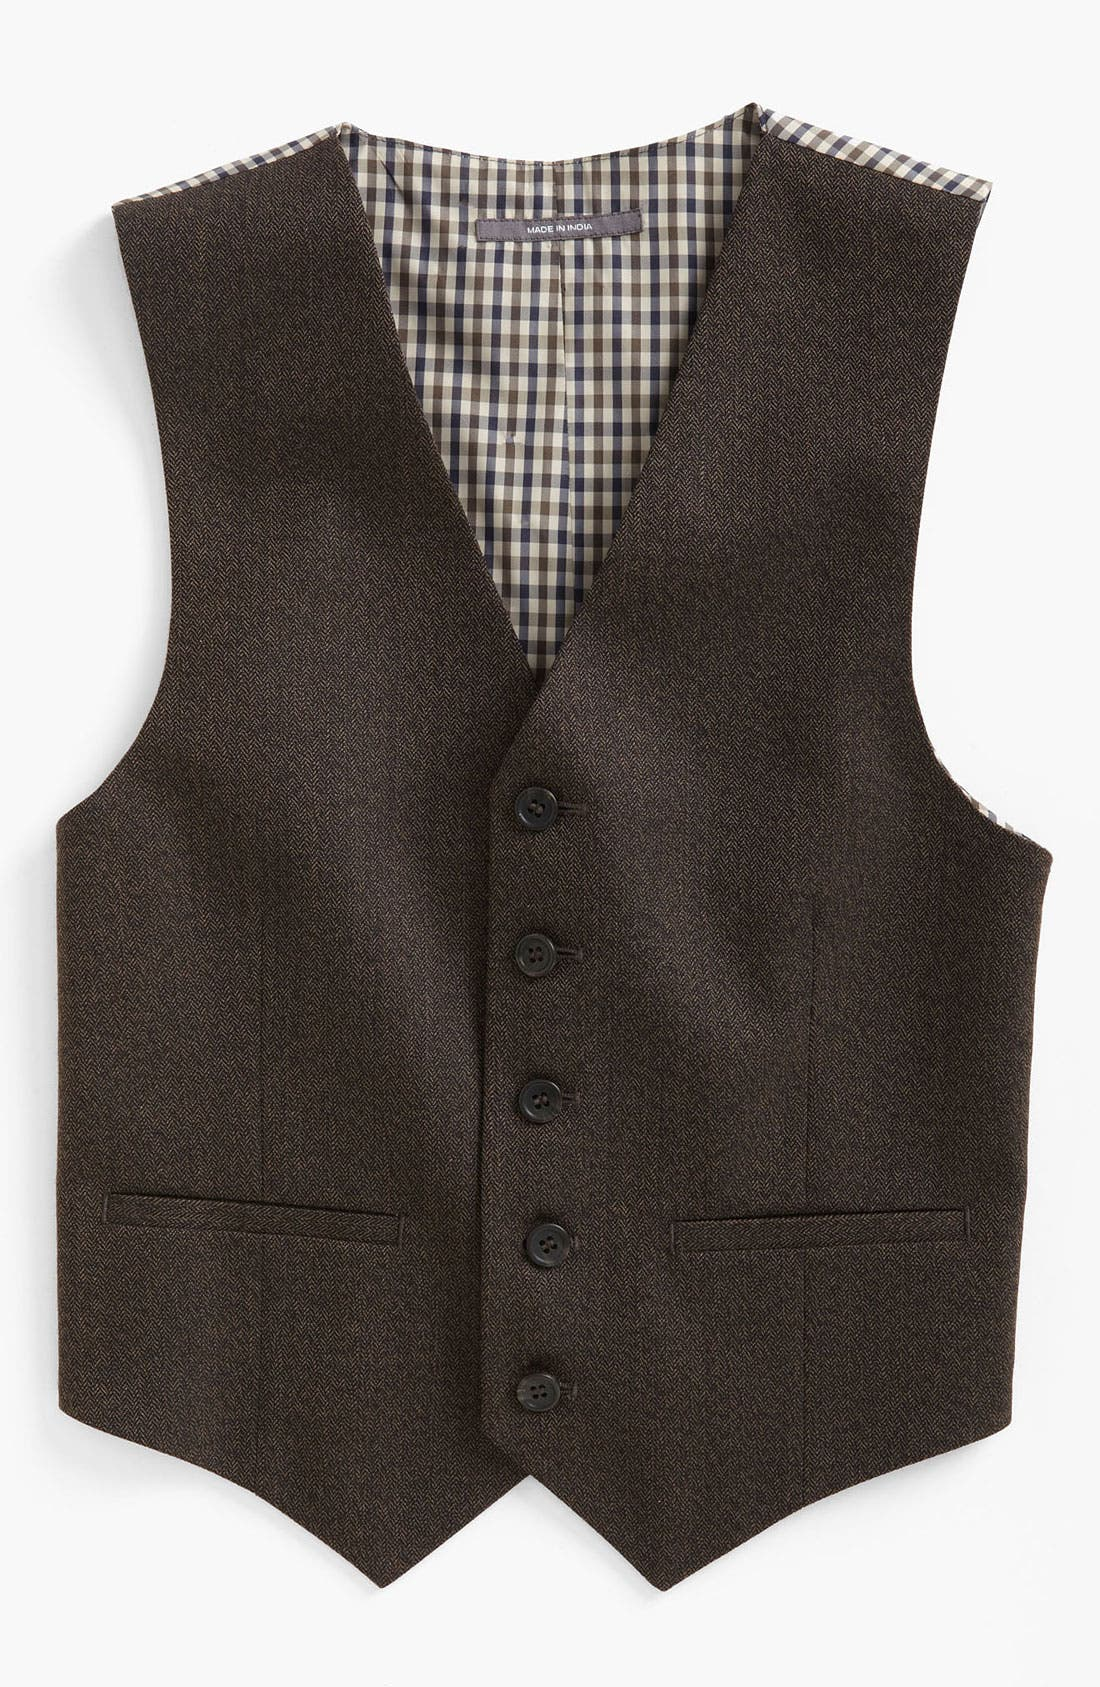 Alternate Image 1 Selected - Nordstrom 'Andrew' Herringbone Vest (Little Boys)